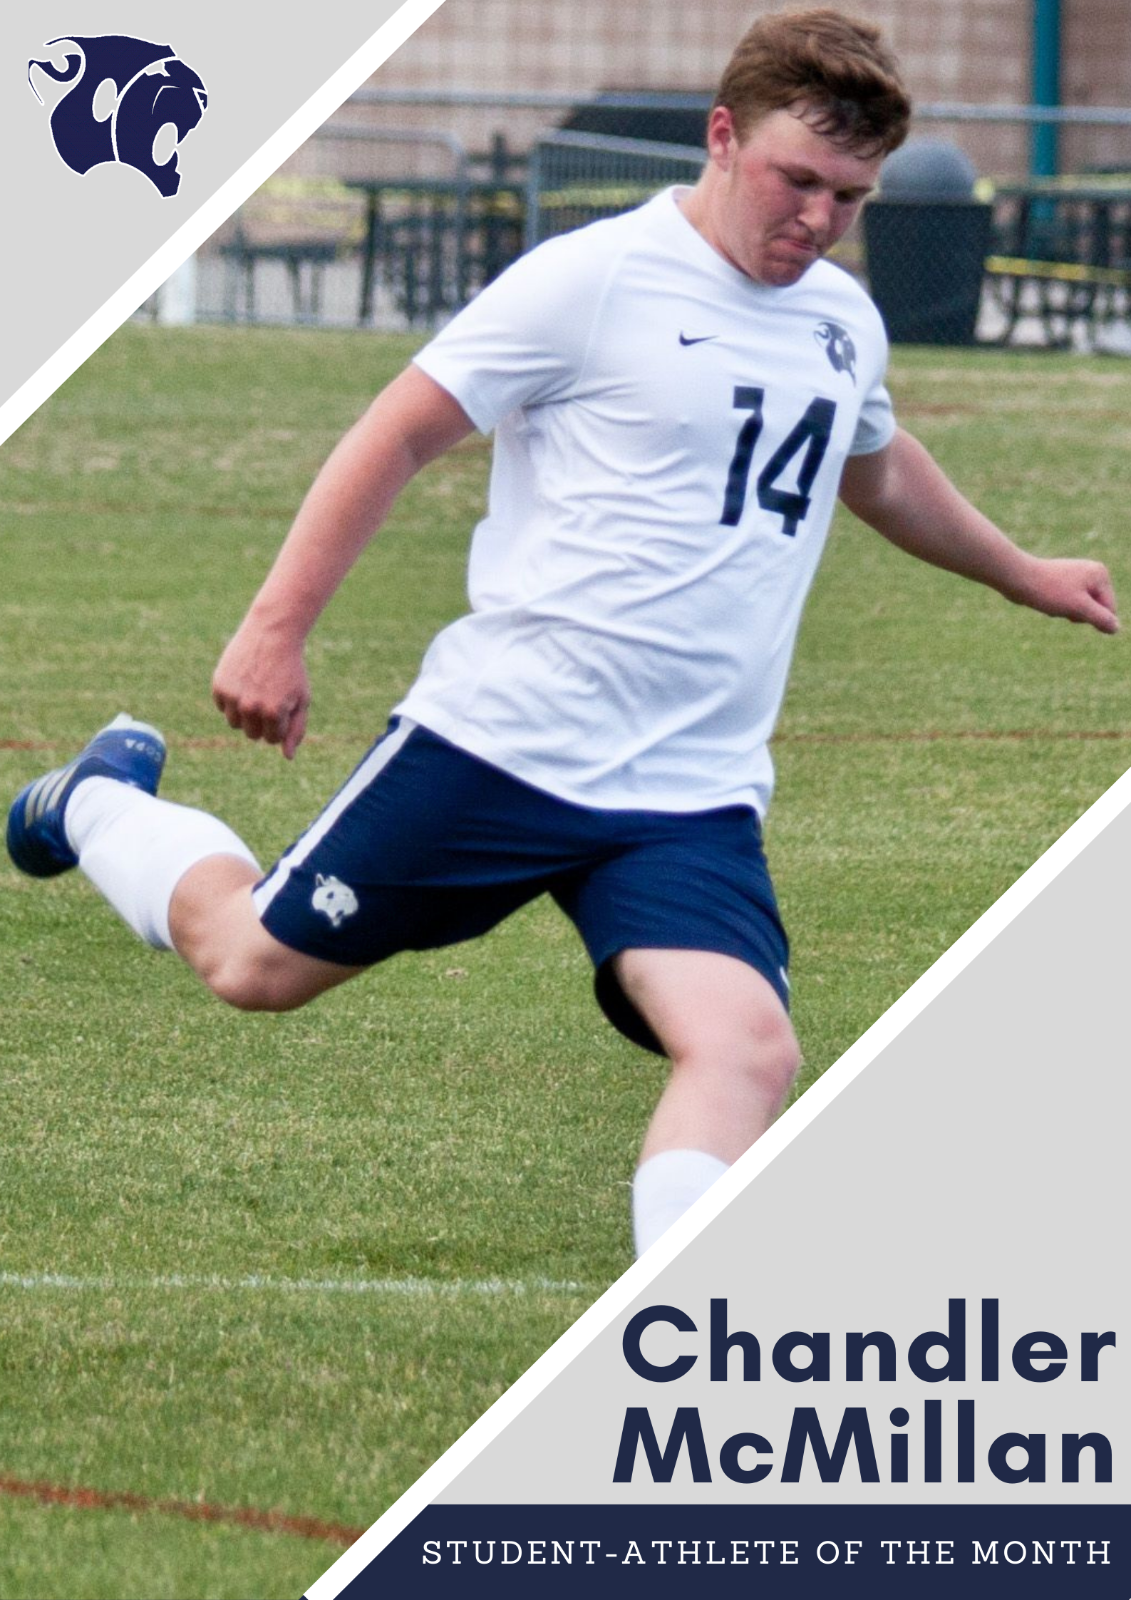 Male Student-Athlete of the Month: Chandler McMillan